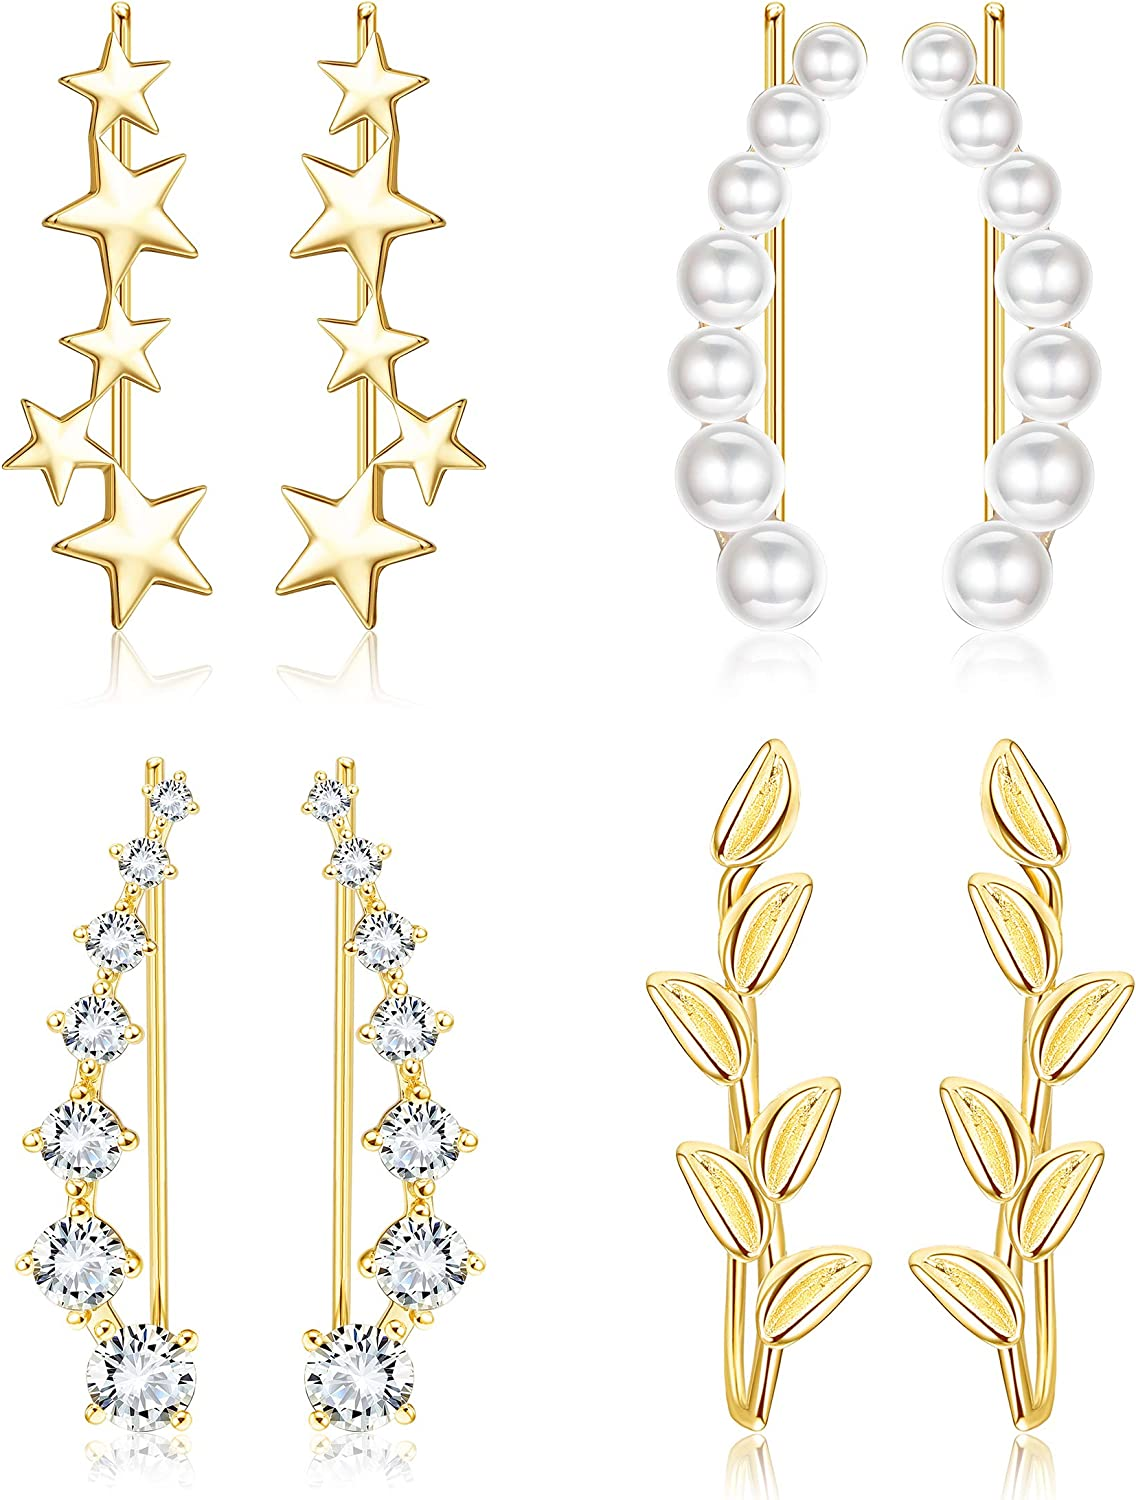 Jstyle 4Pairs Ear Cuff Climbers Earrings for Women CZ Inlaid Pearl Leaf Star Ear Crawlers Earring Set